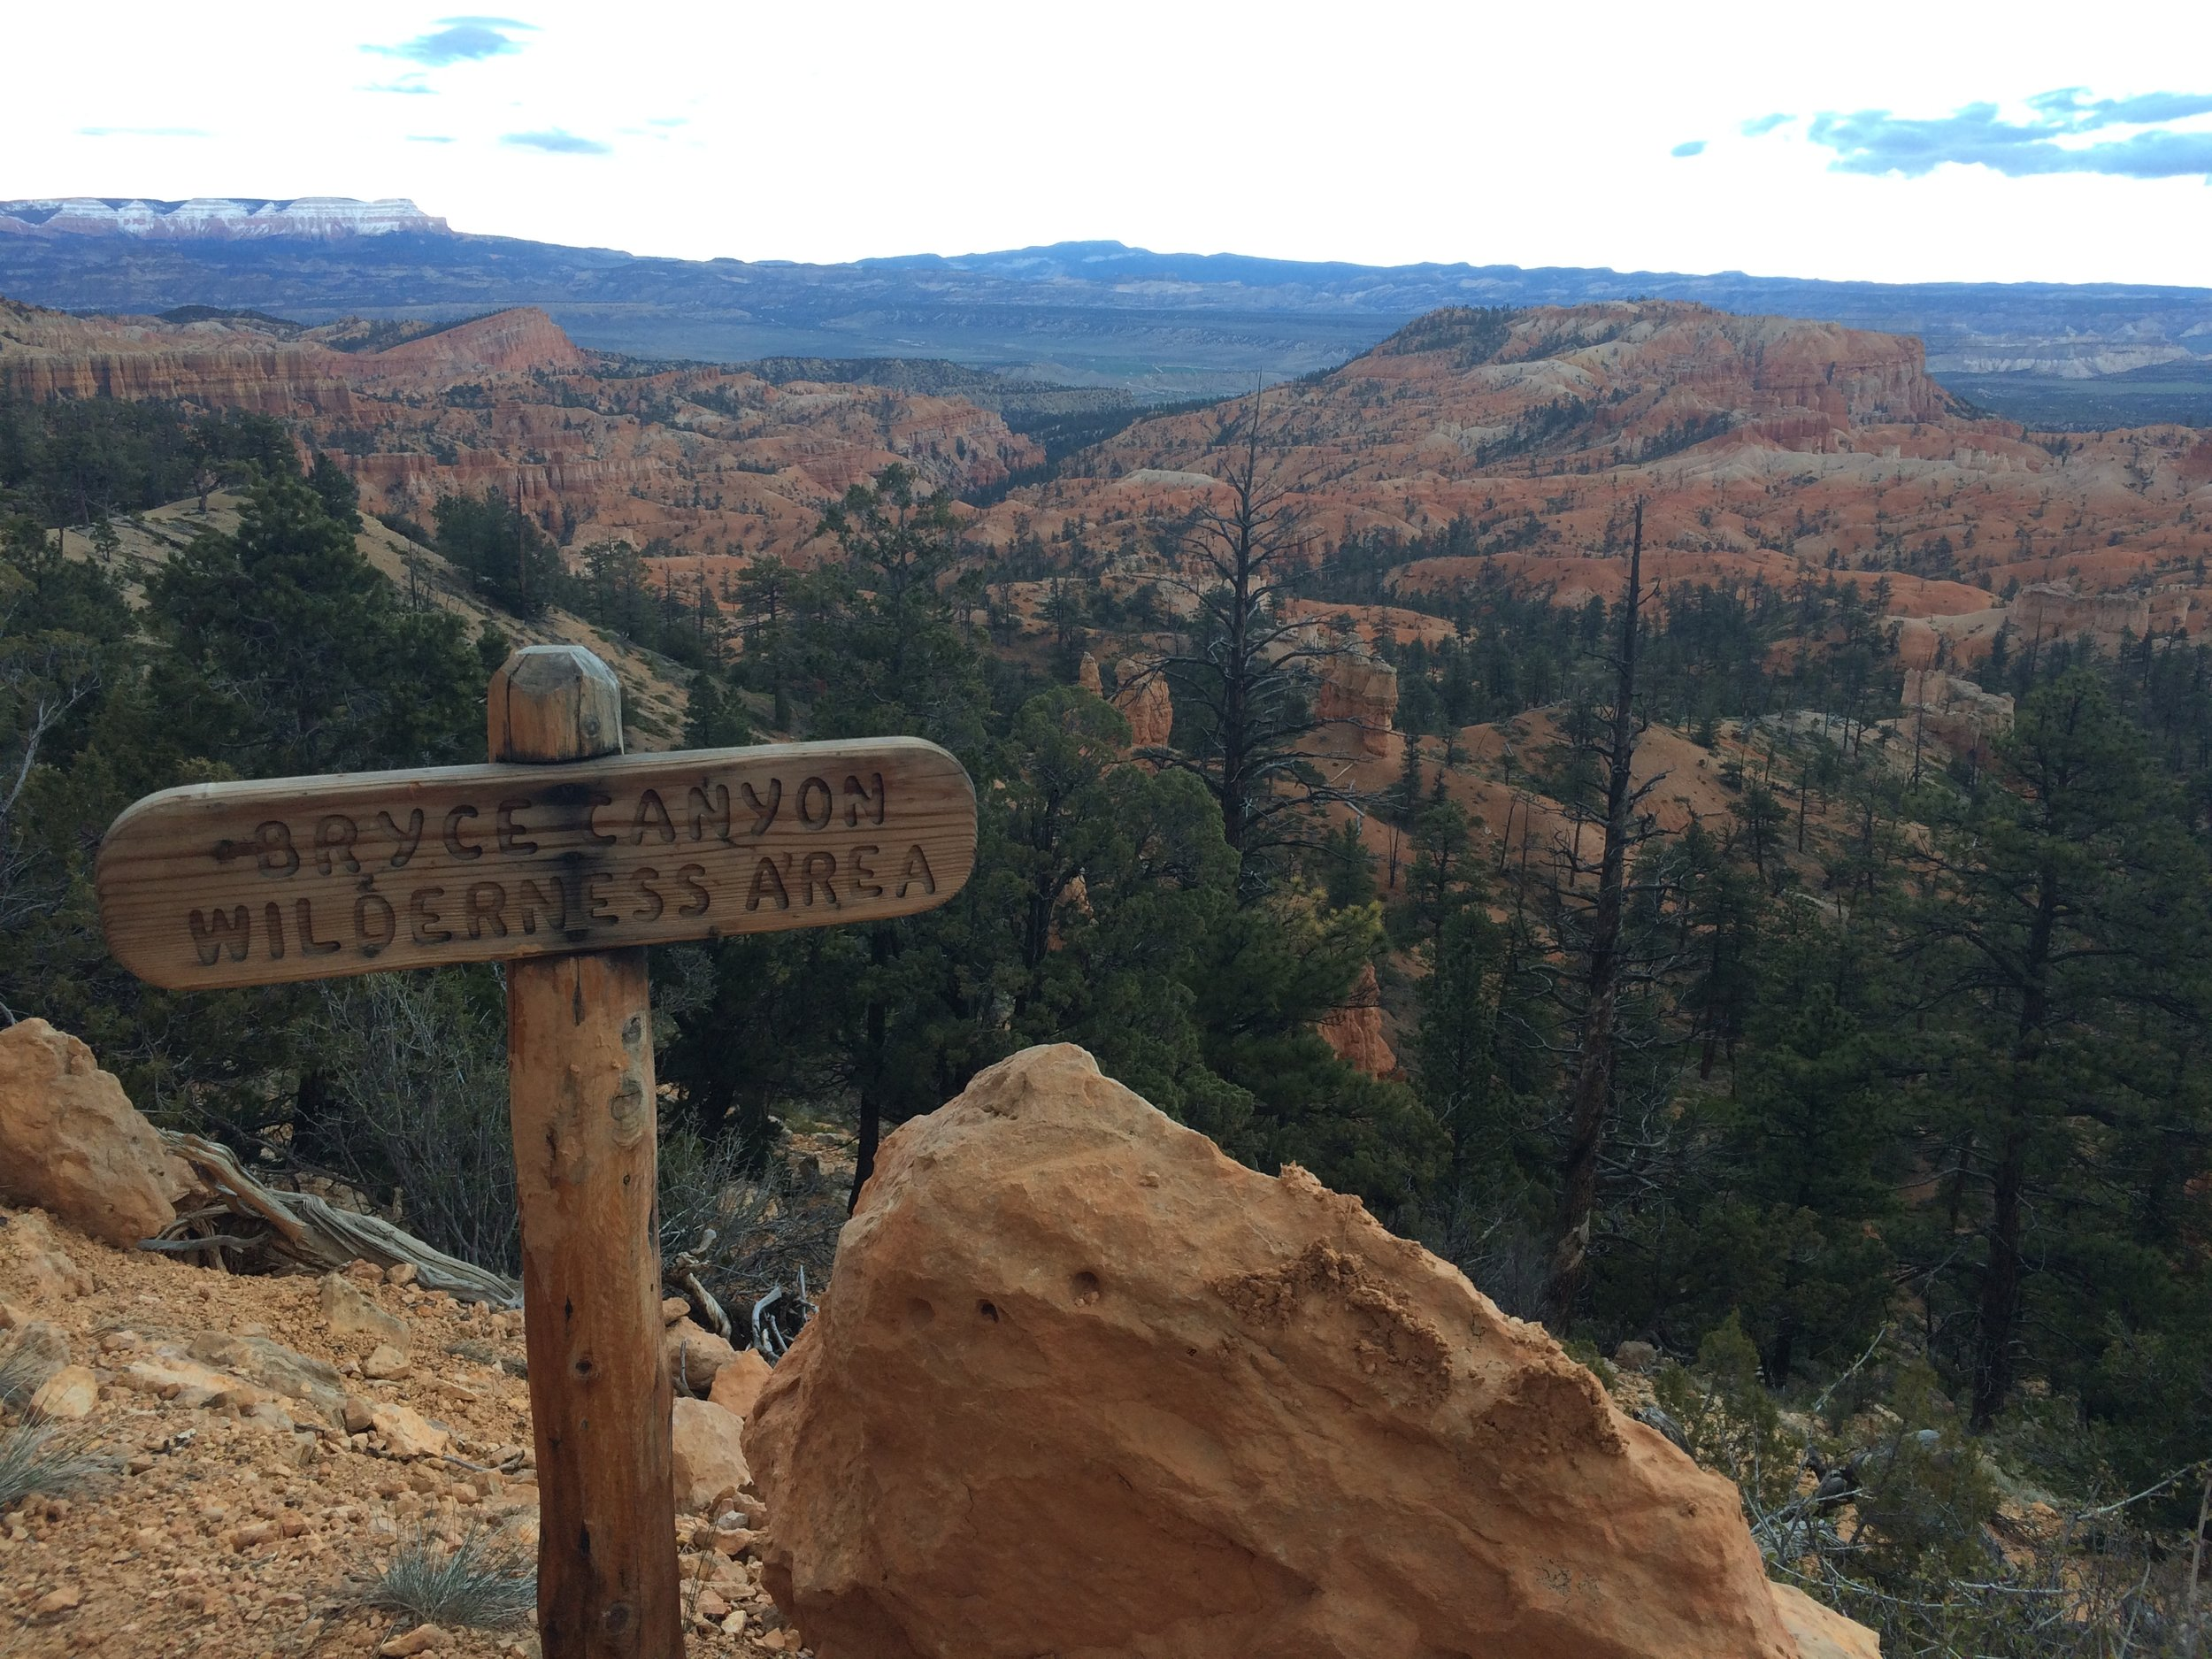 Leaving the wilderness for the final trek along the Rim Trail